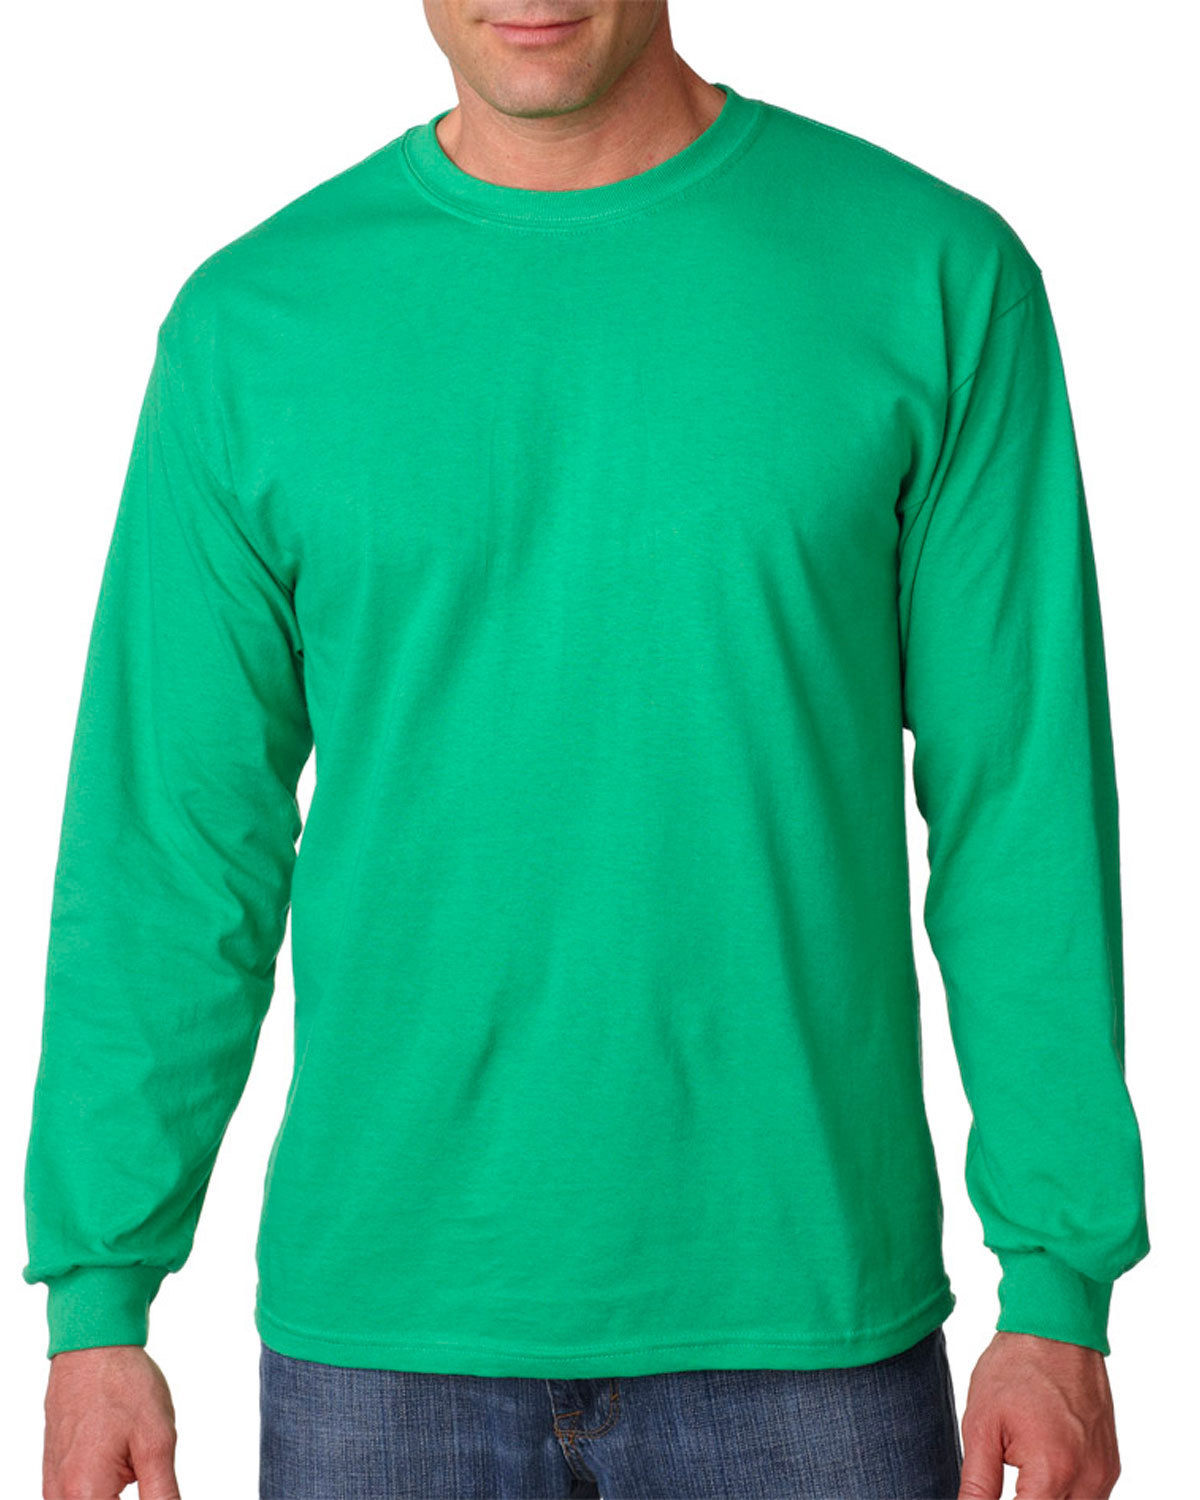 bf3d2589a07f Gildan Mens Crewneck Guys Heavy Cotton Long Sleeve T Shirt 5400 Forest  Medium B04060544. About this product. Picture 1 of 4; Picture 2 of 4;  Picture 3 of 4 ...